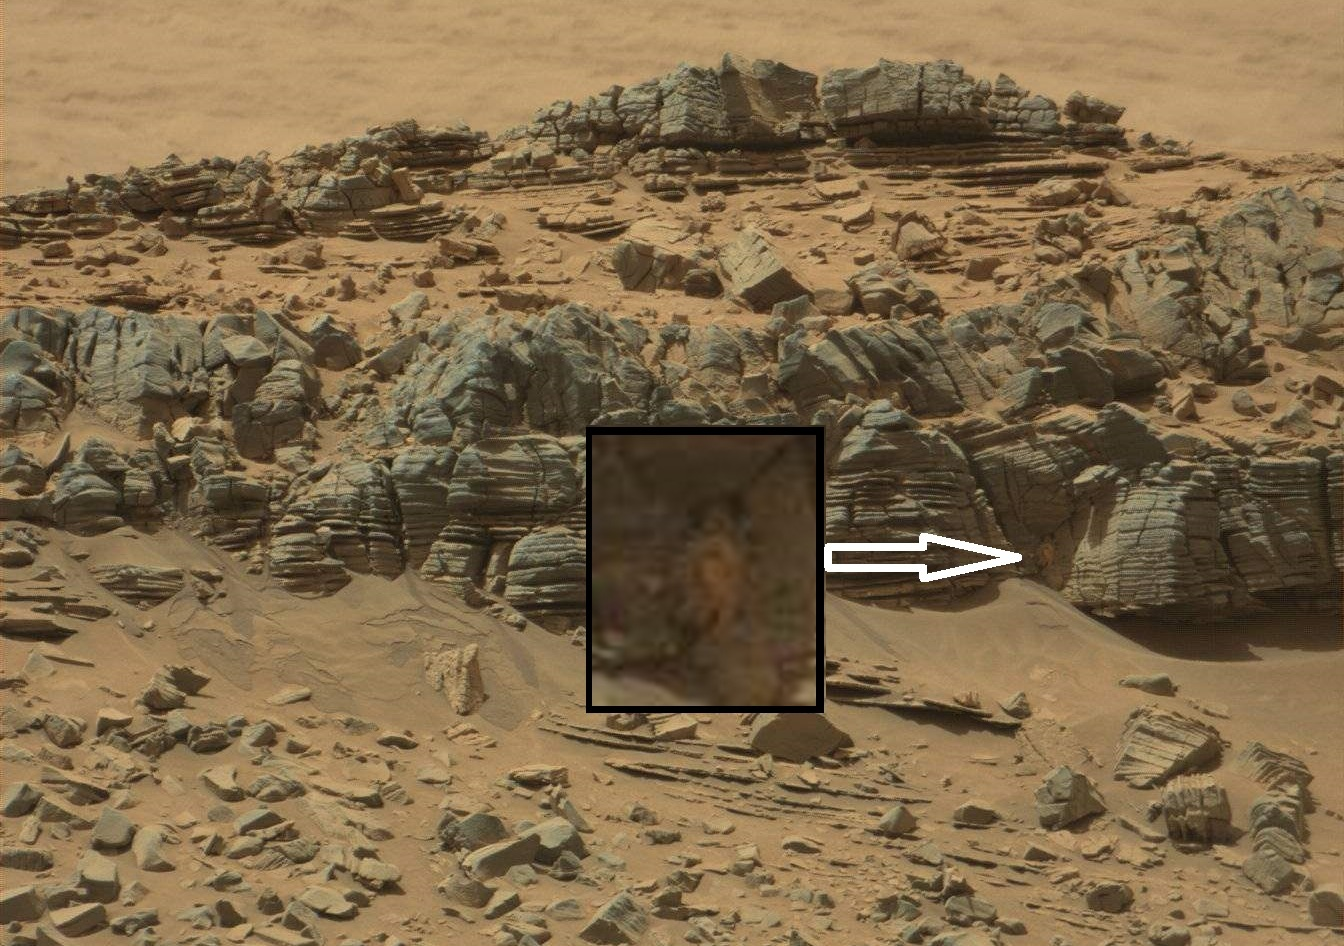 Mars crab monster rock